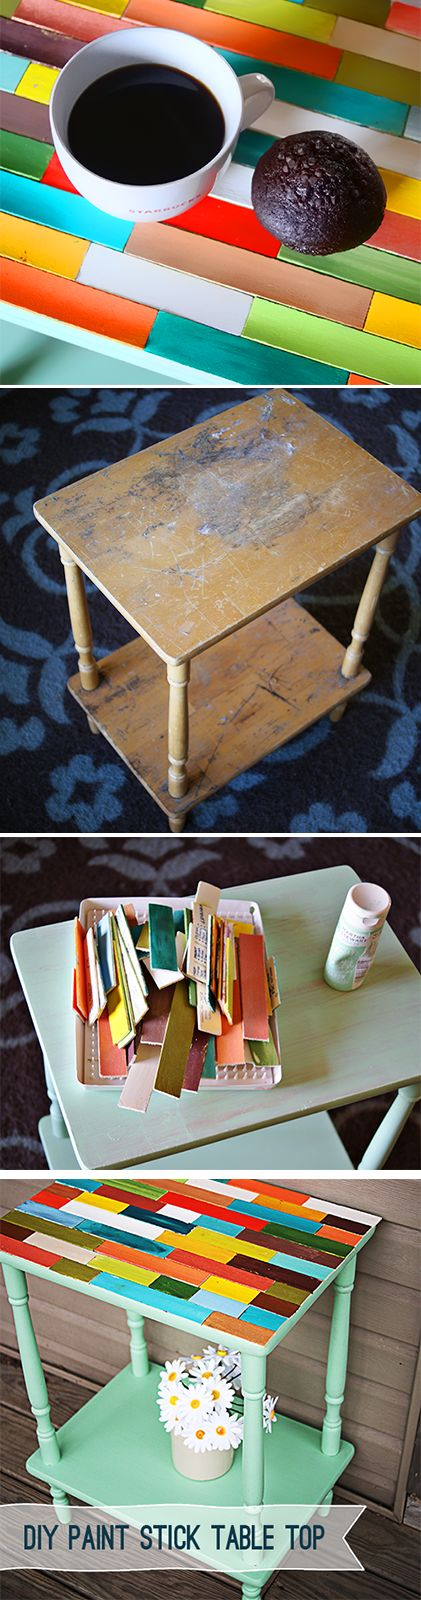 How to make a paint stick table top from @savedbyloves #DIY #Tutorial....